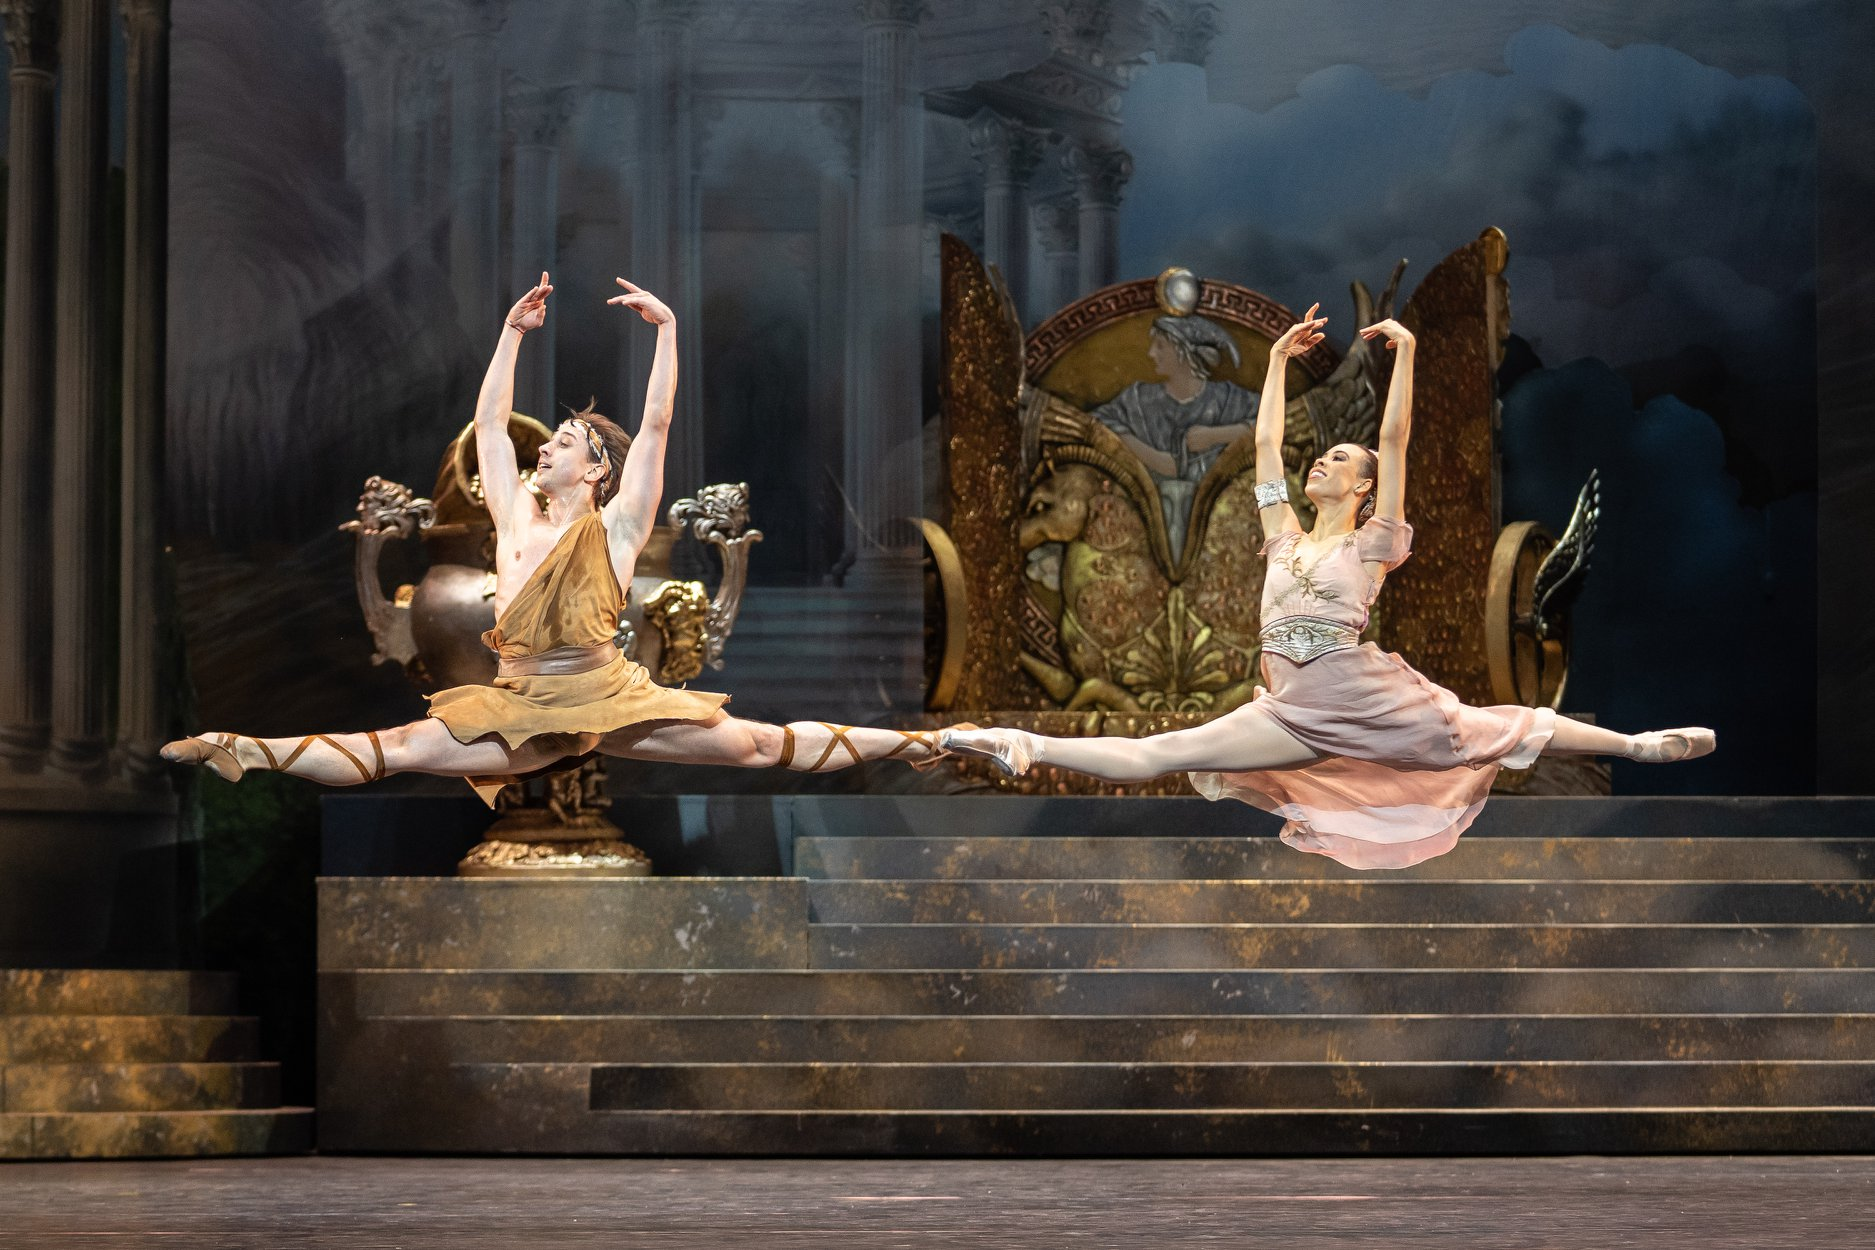 Copyright: Vienna State Ballet / Ashley Taylor